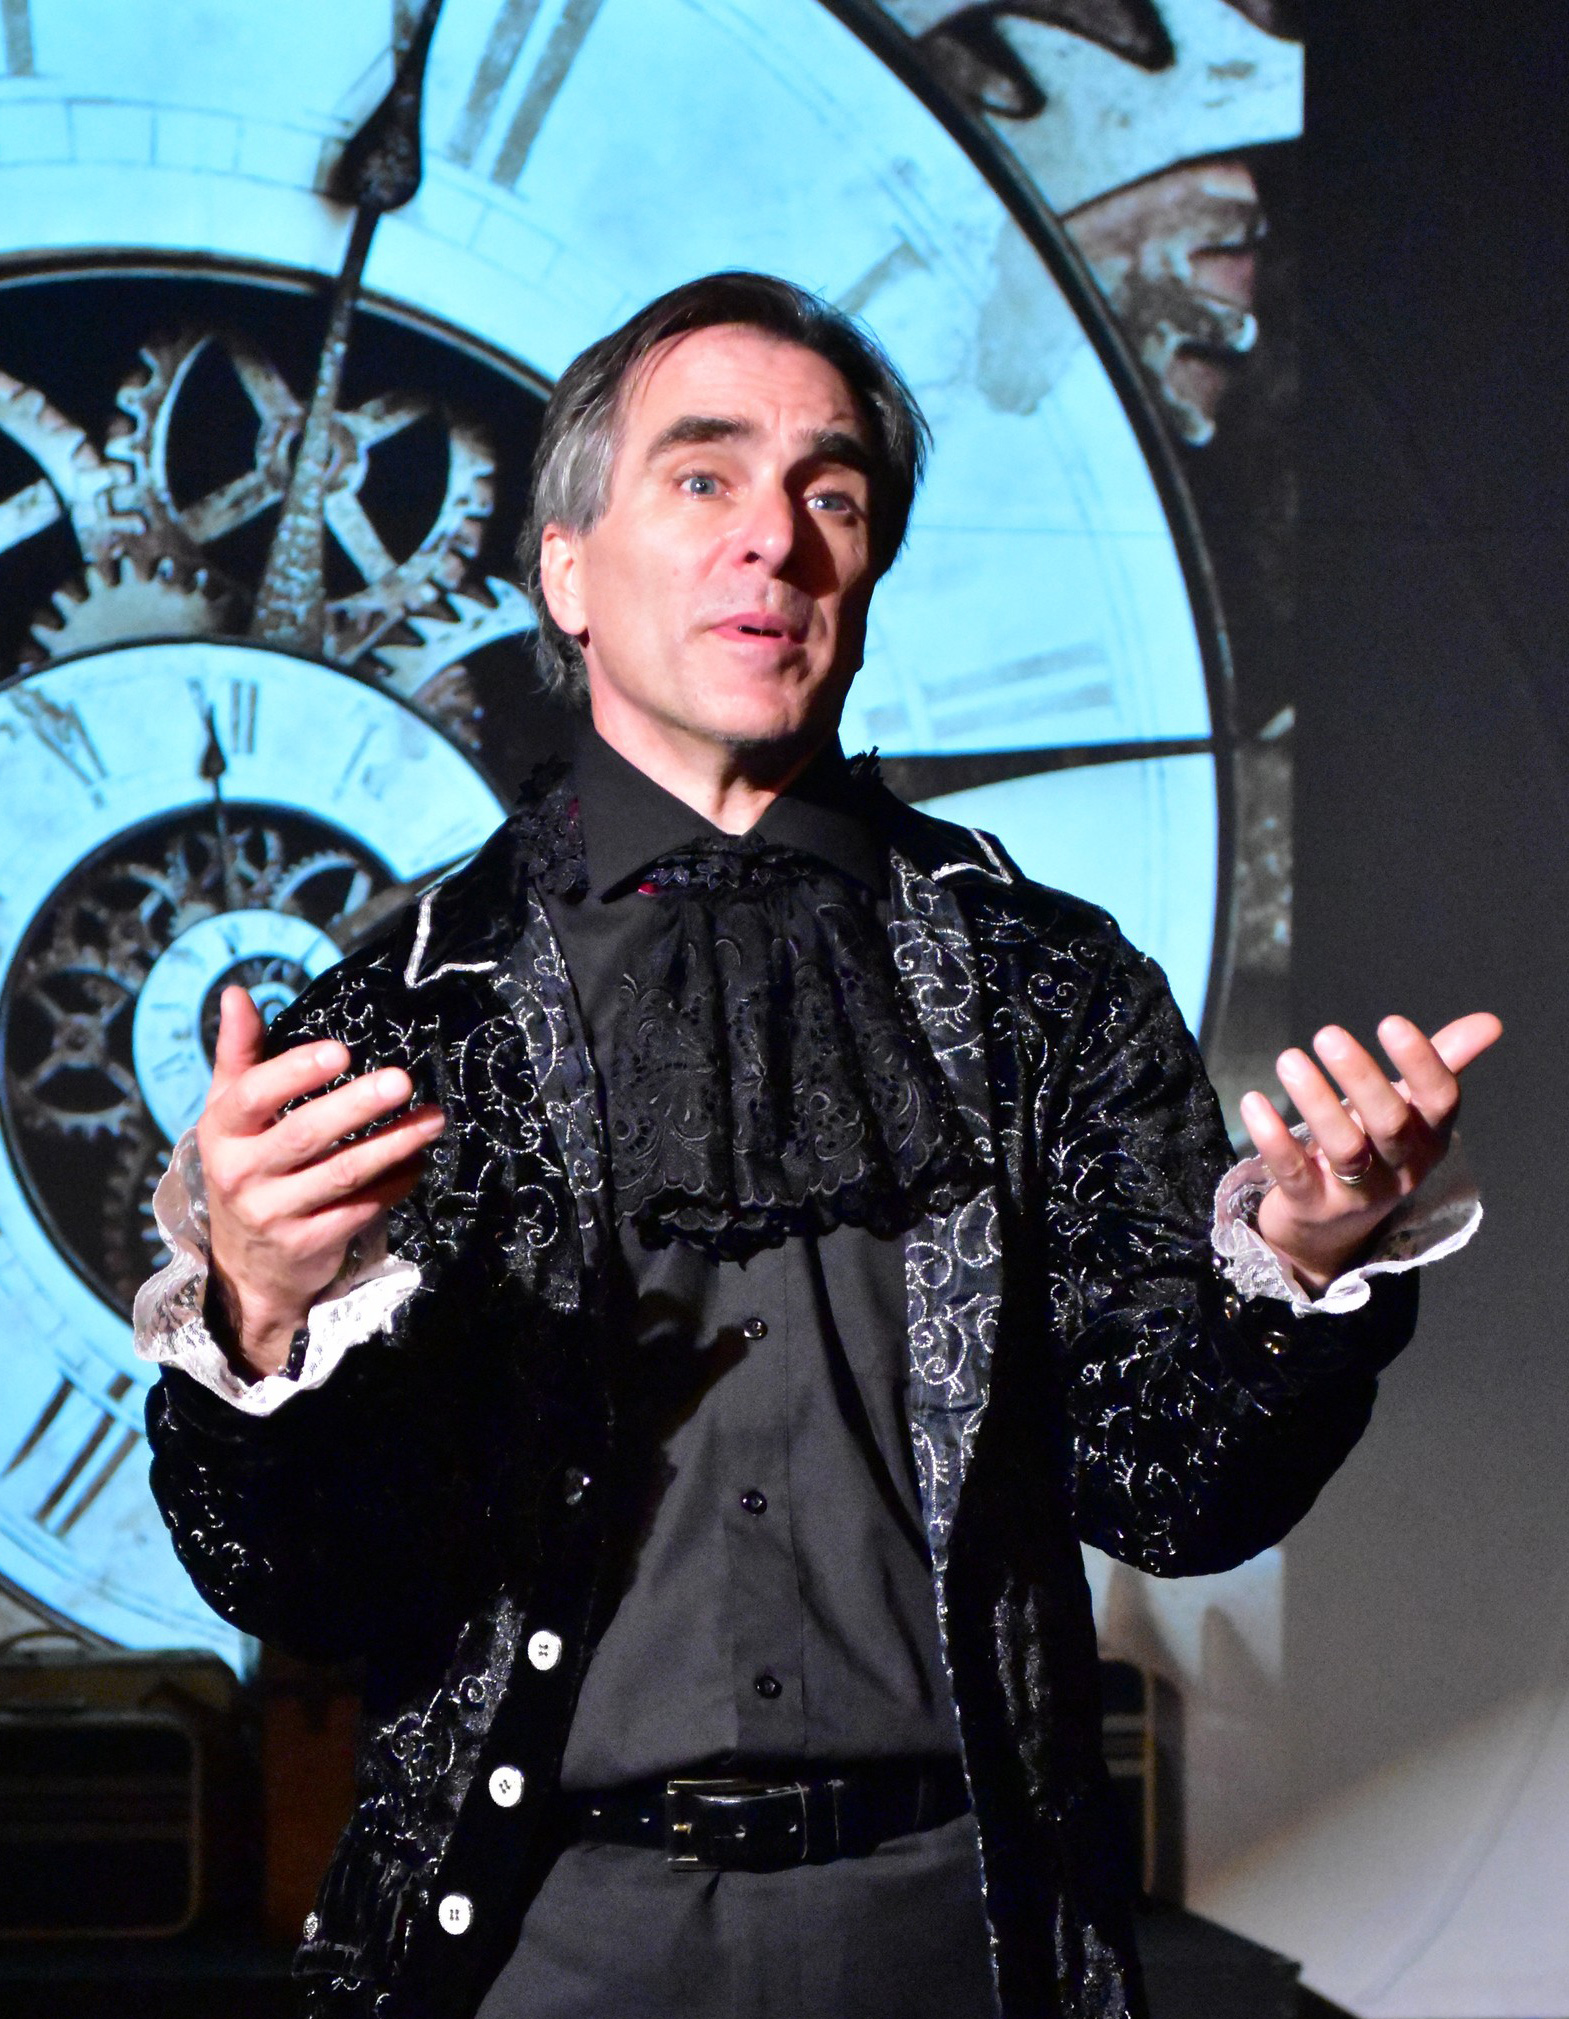 David Whitehead as Antonio Salieri in Amadeus